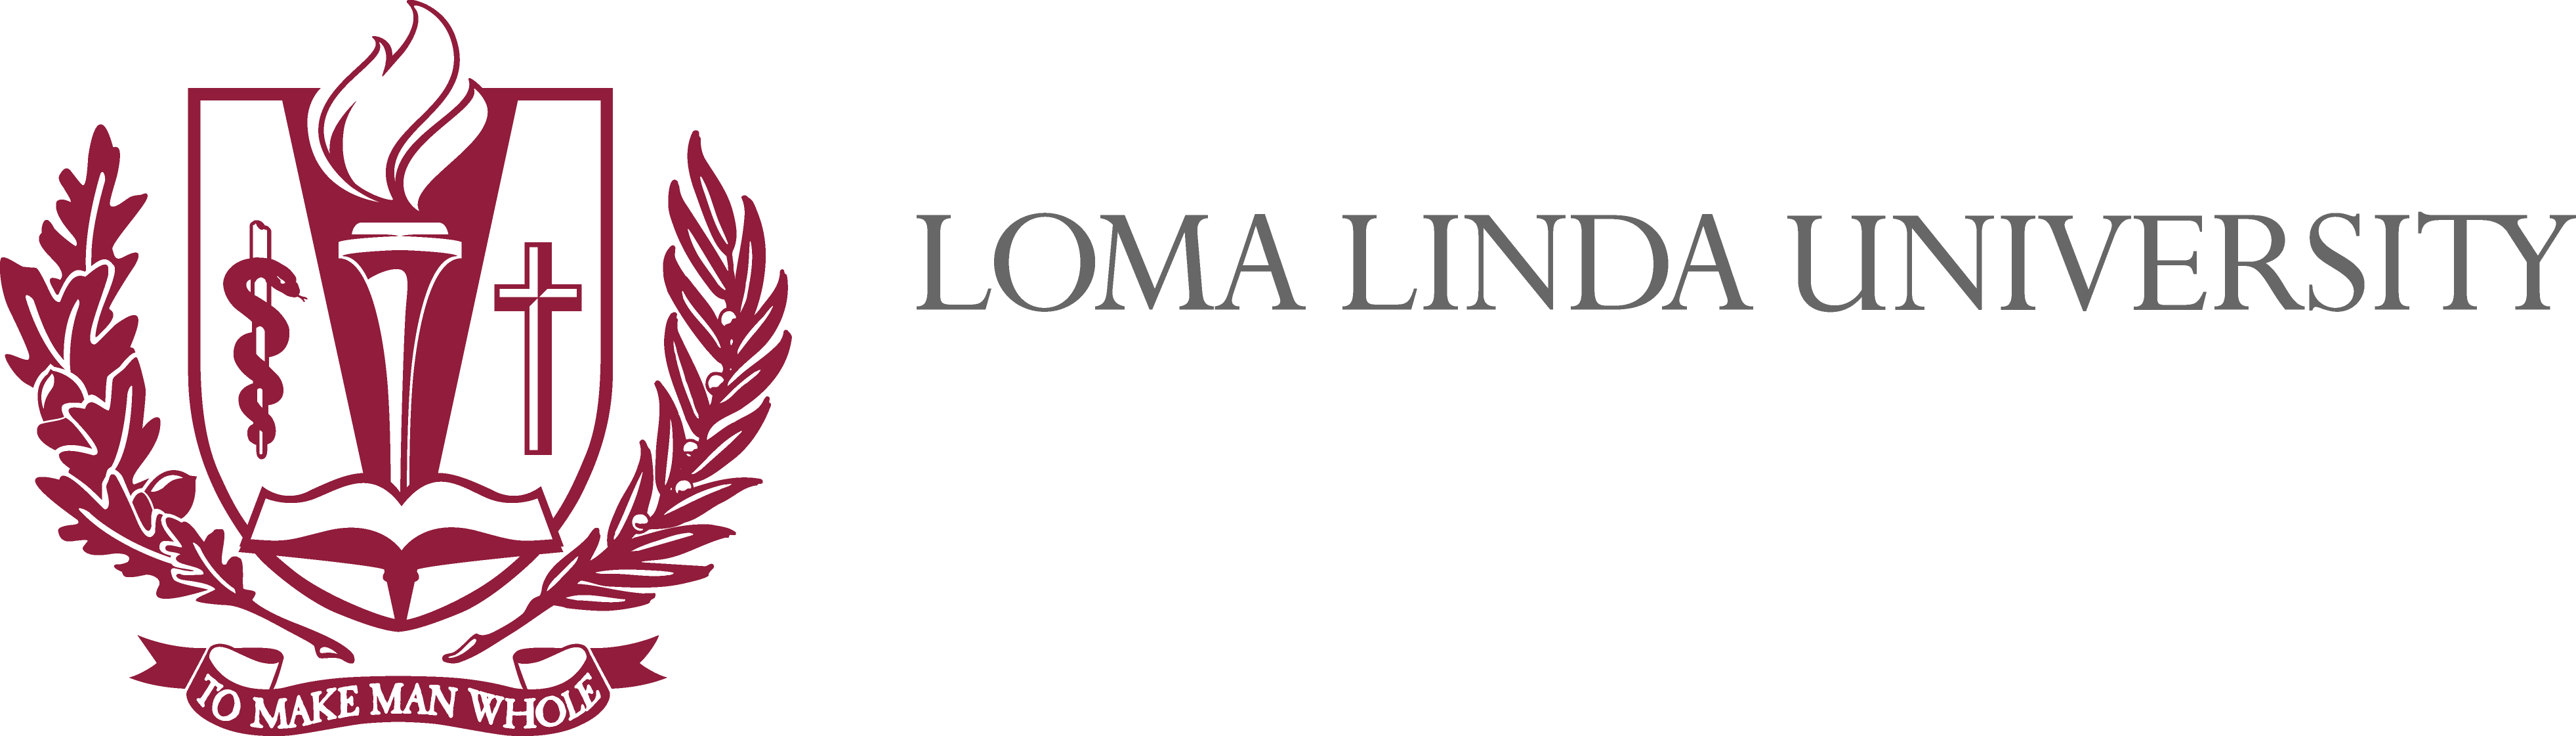 Loma Linda University Catalog